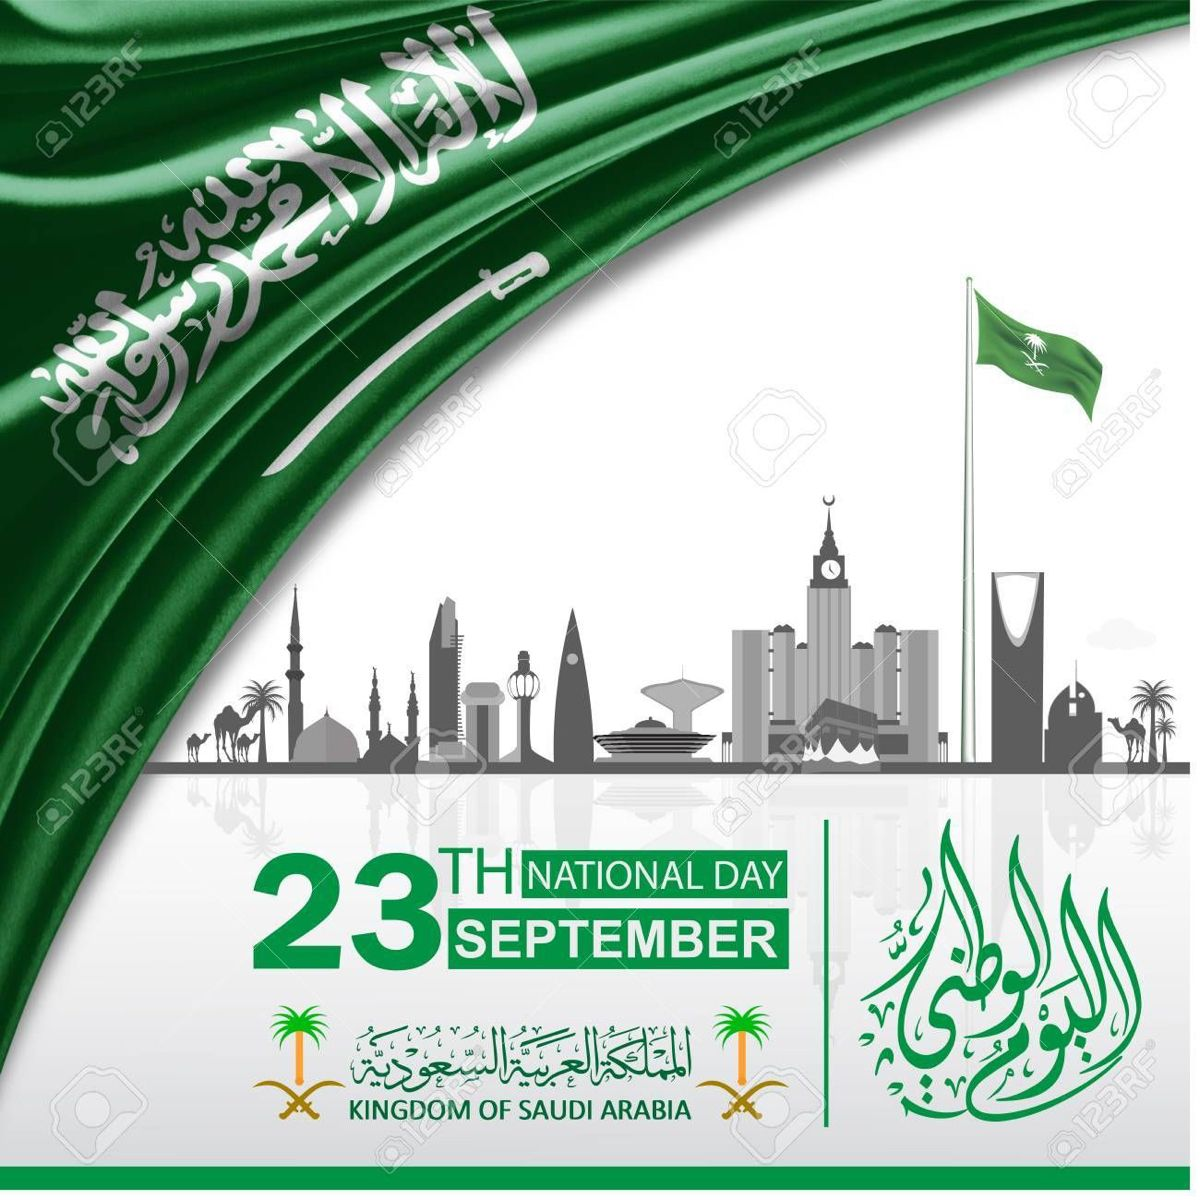 Pin By Almonther Mansour On Saudi In 2021 Happy National Day National Day Saudi National Day